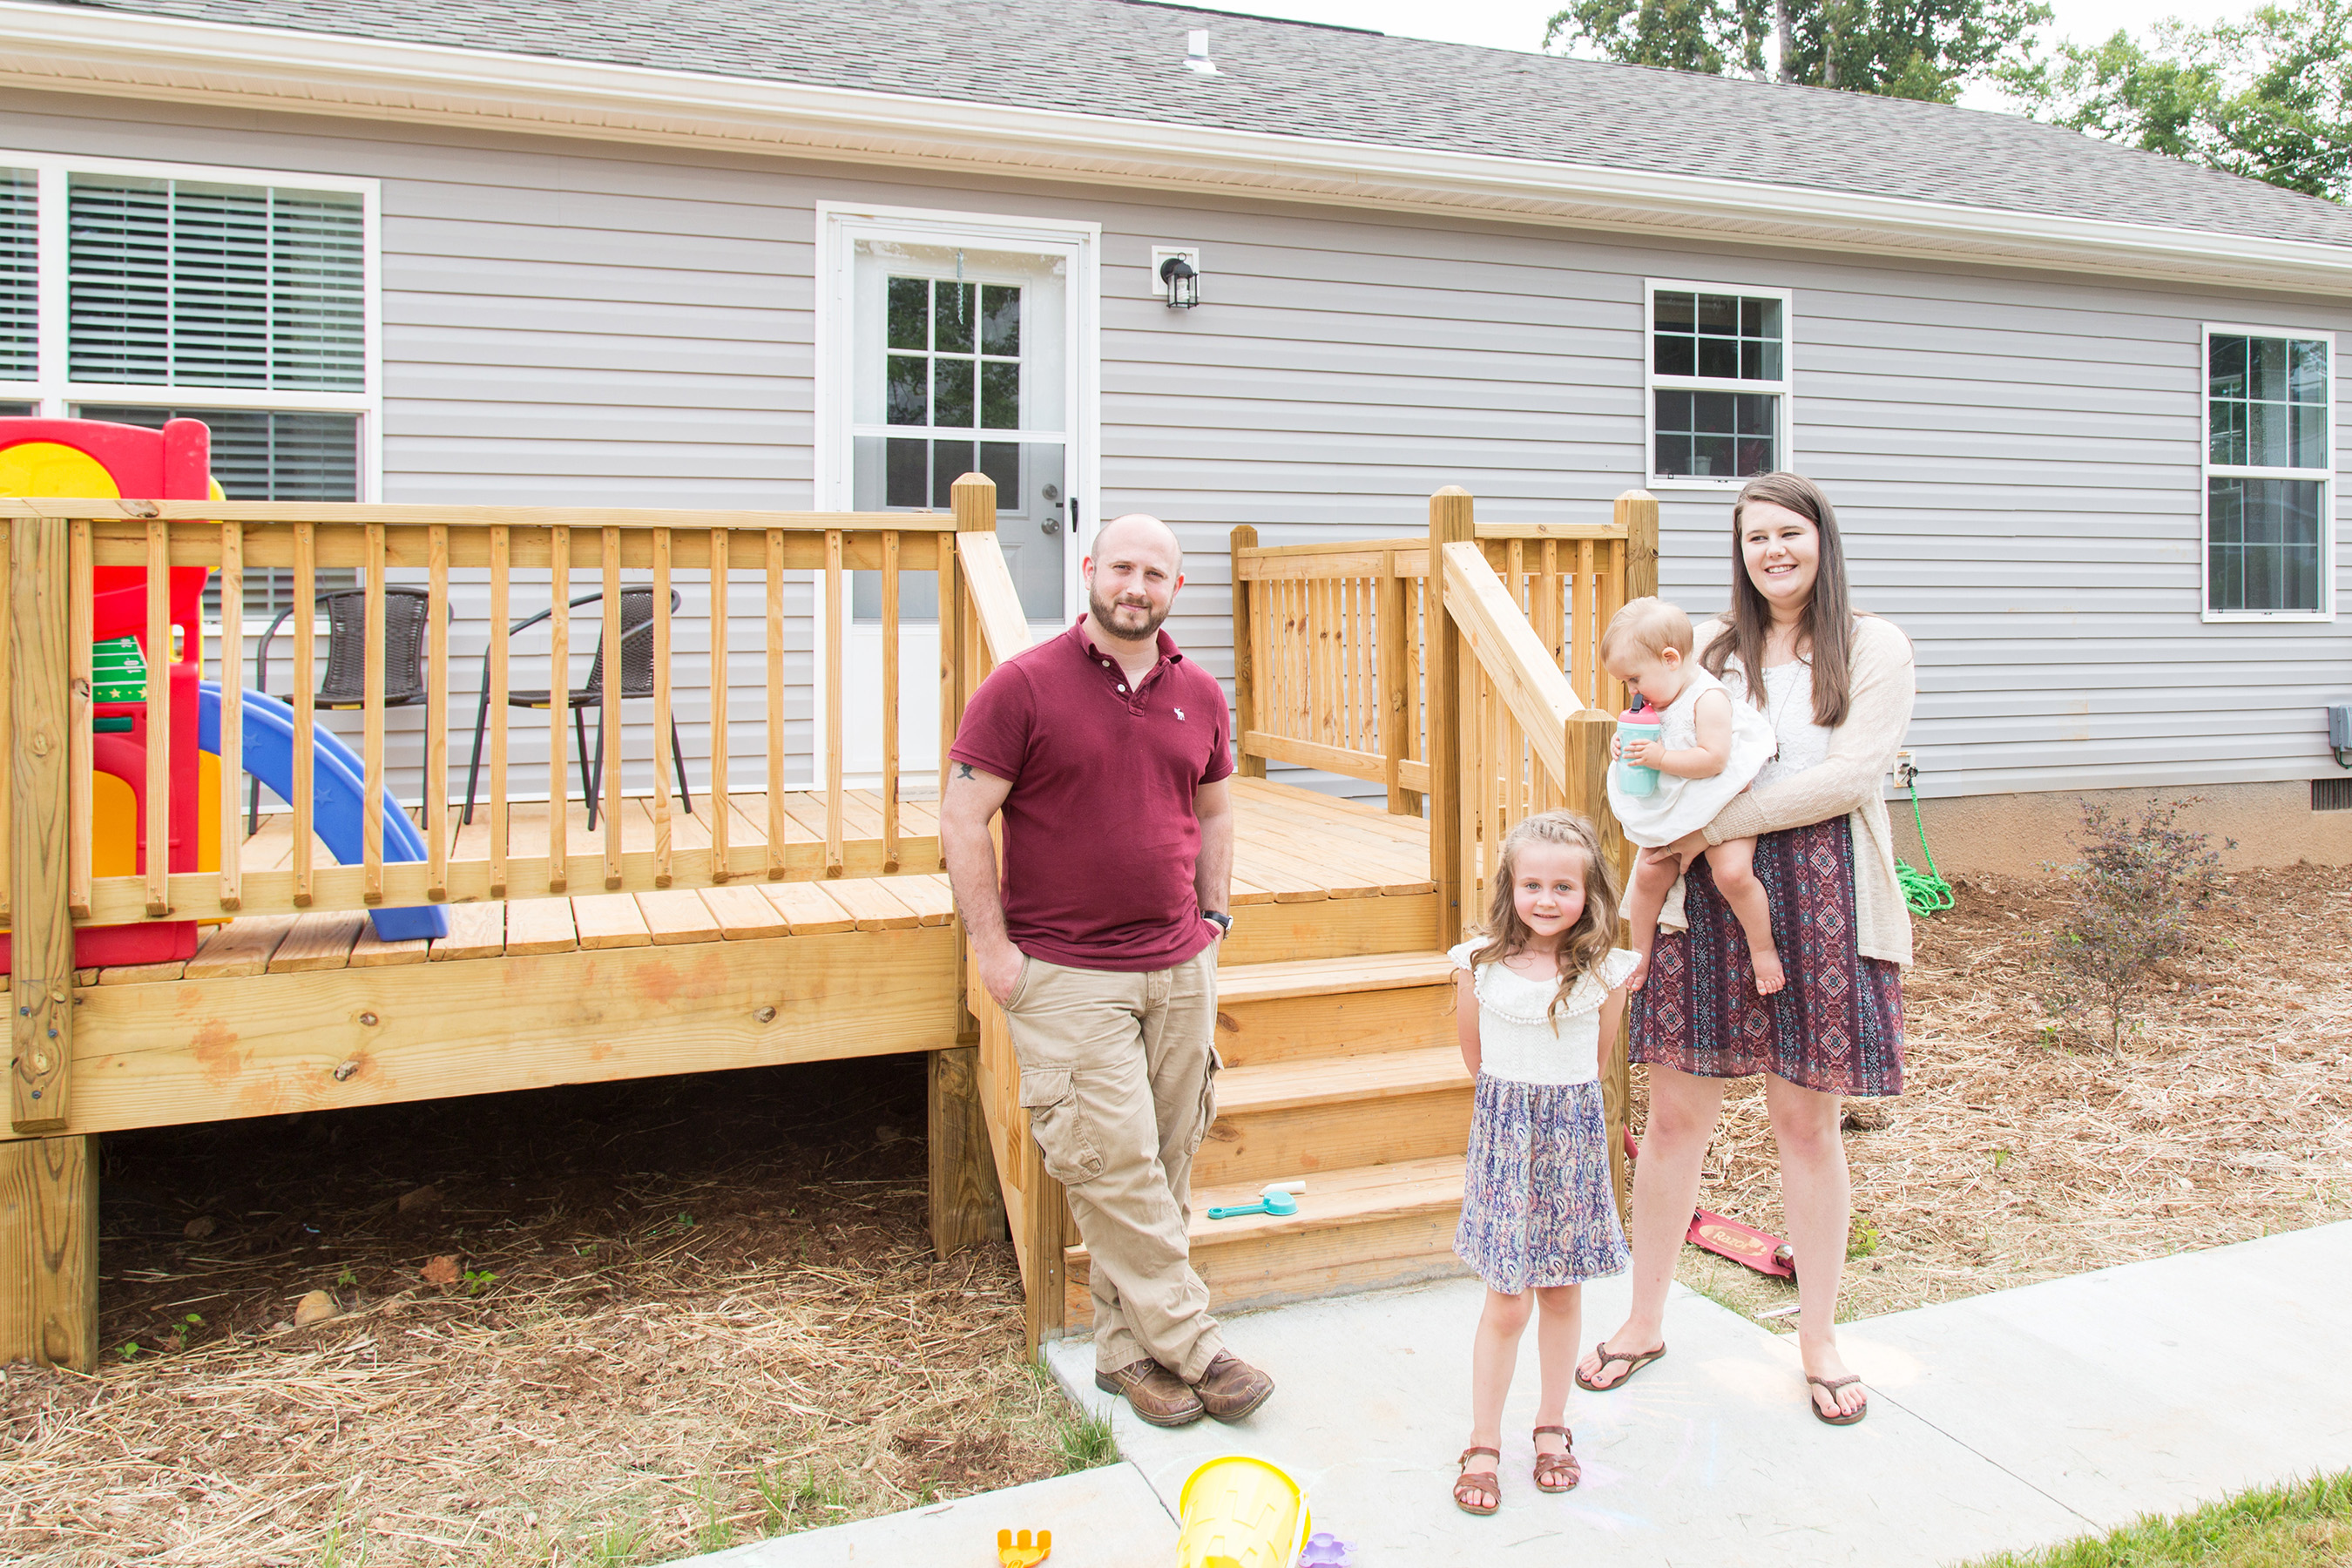 Robert and Chasity Woody stand in front of their Clayton Home with their two daughters.